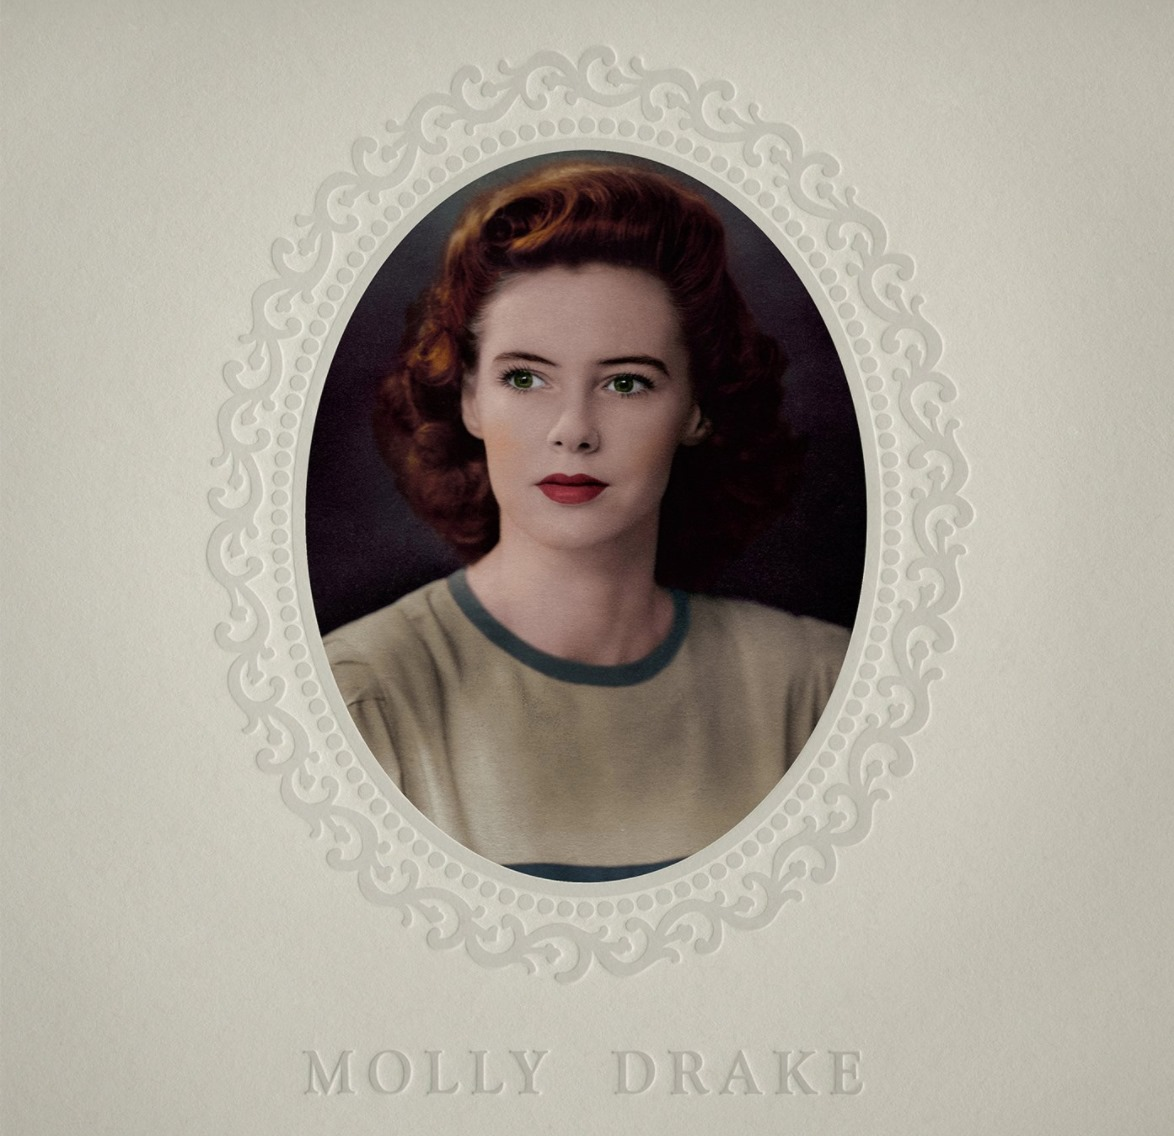 Molly Drake par Dominique A